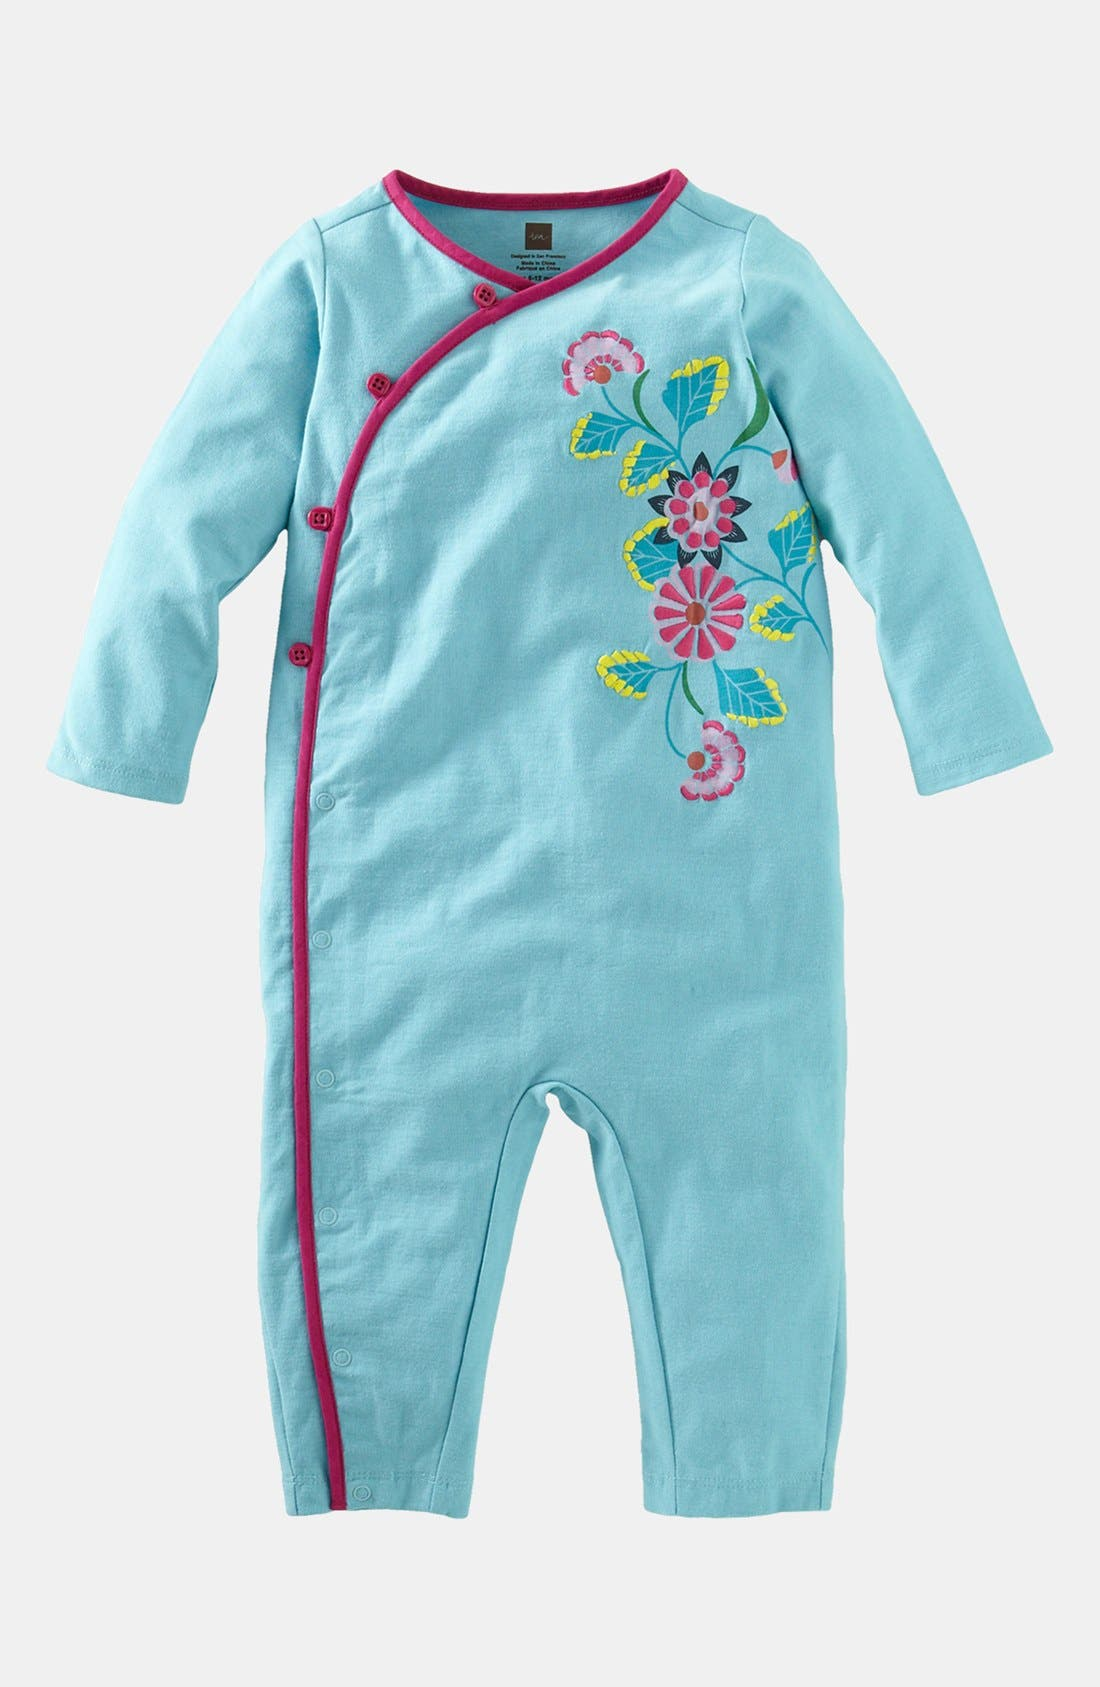 Main Image - Tea Collection Floral Wrap Romper (Baby Girl)